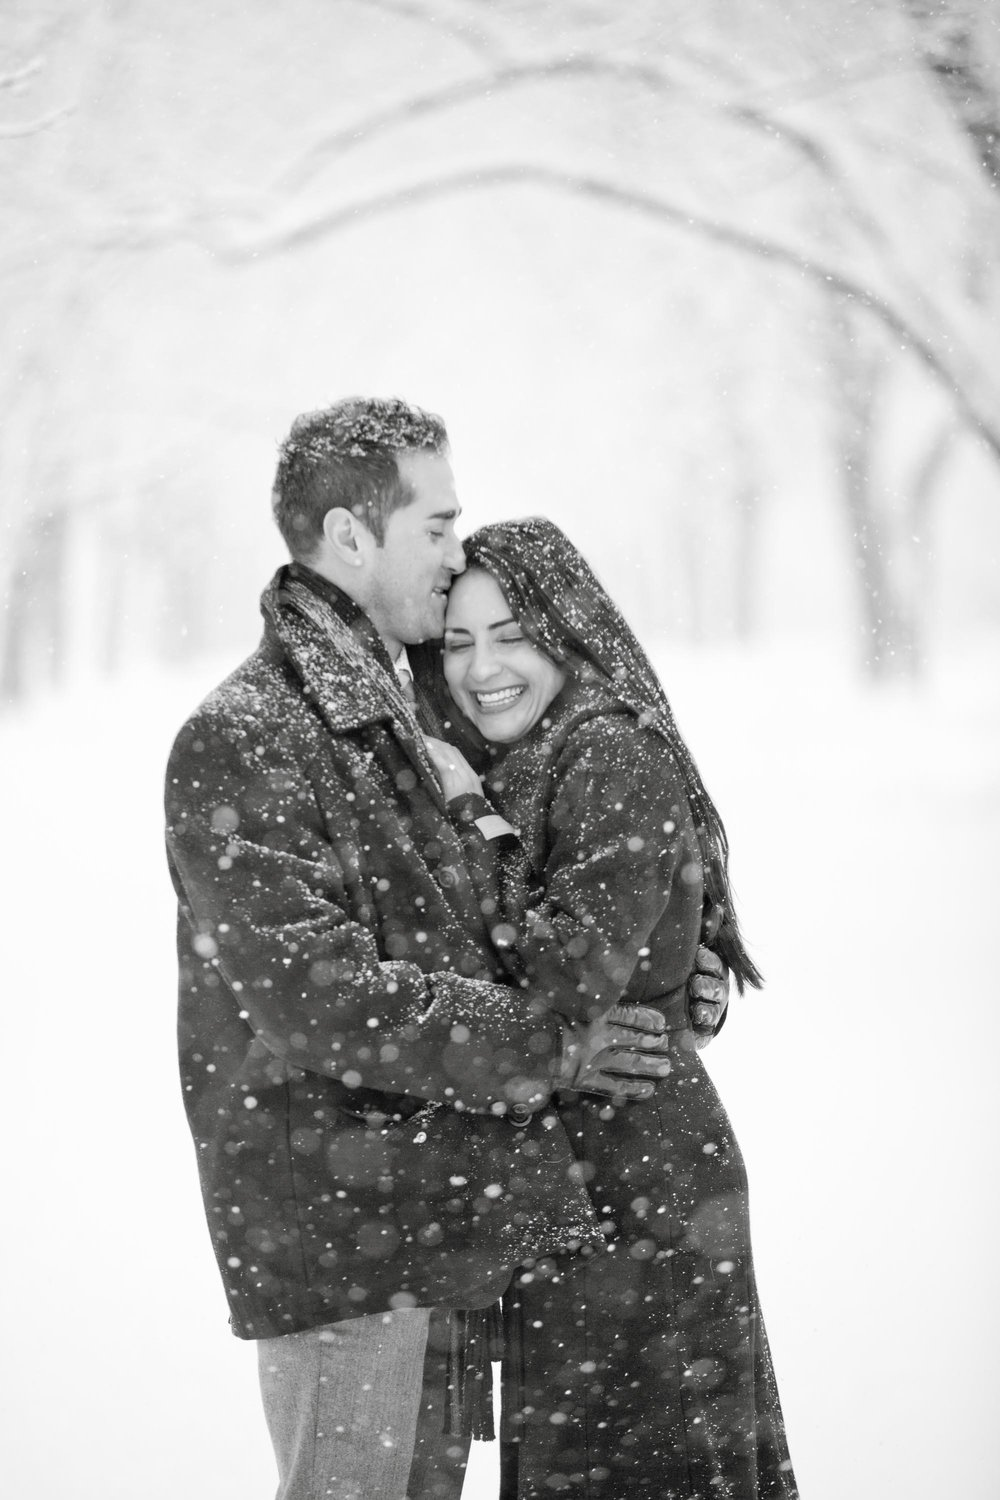 nataschia_wielink_photography_niagara_on_the_lake_engagement_session_vanessa_matt 0011 .JPG